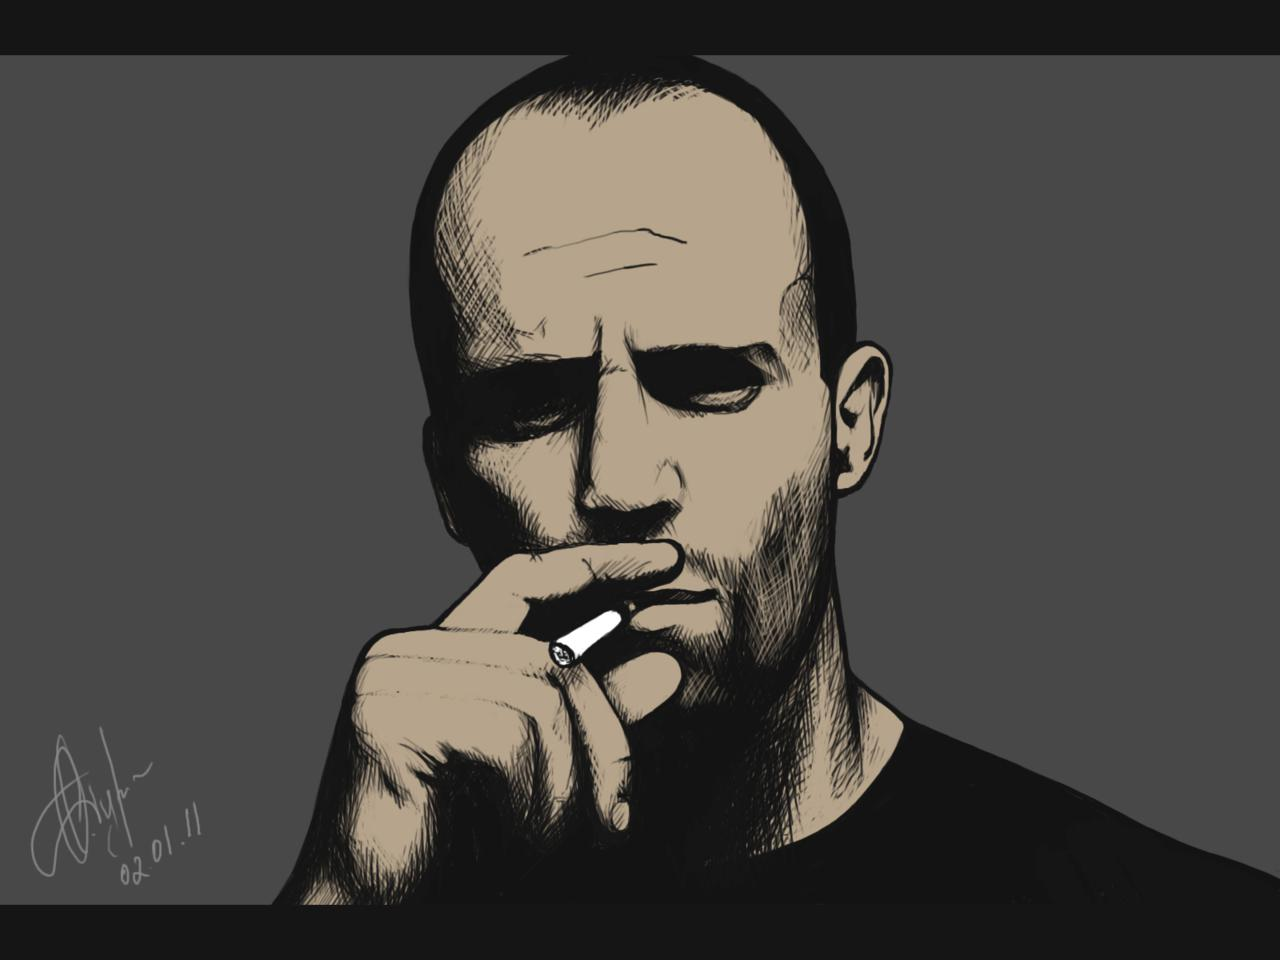 PC-Wallpapers - Free Jason Statham Desktop Wallpaper Backgrounds